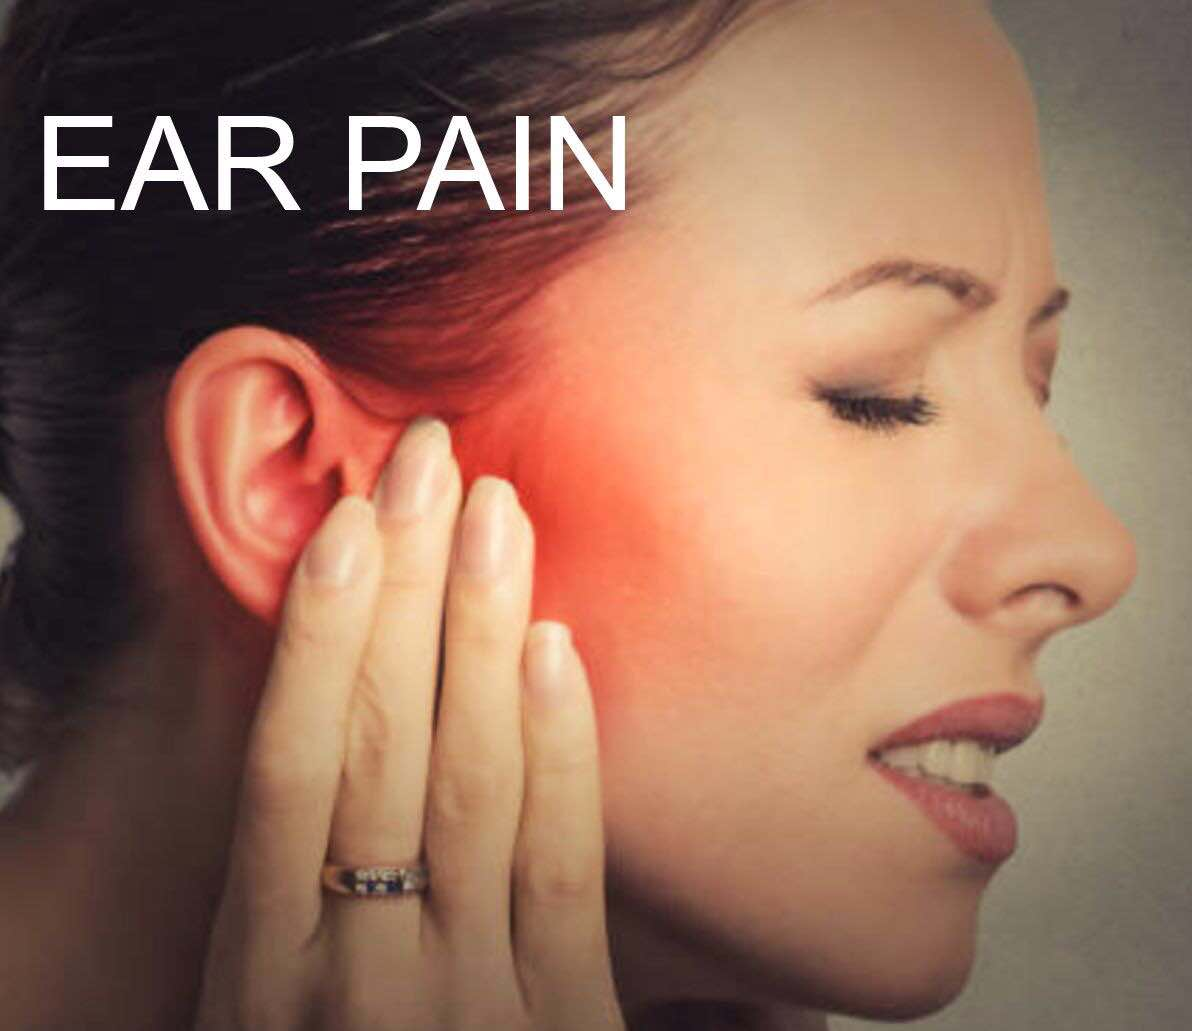 What causes ear pain